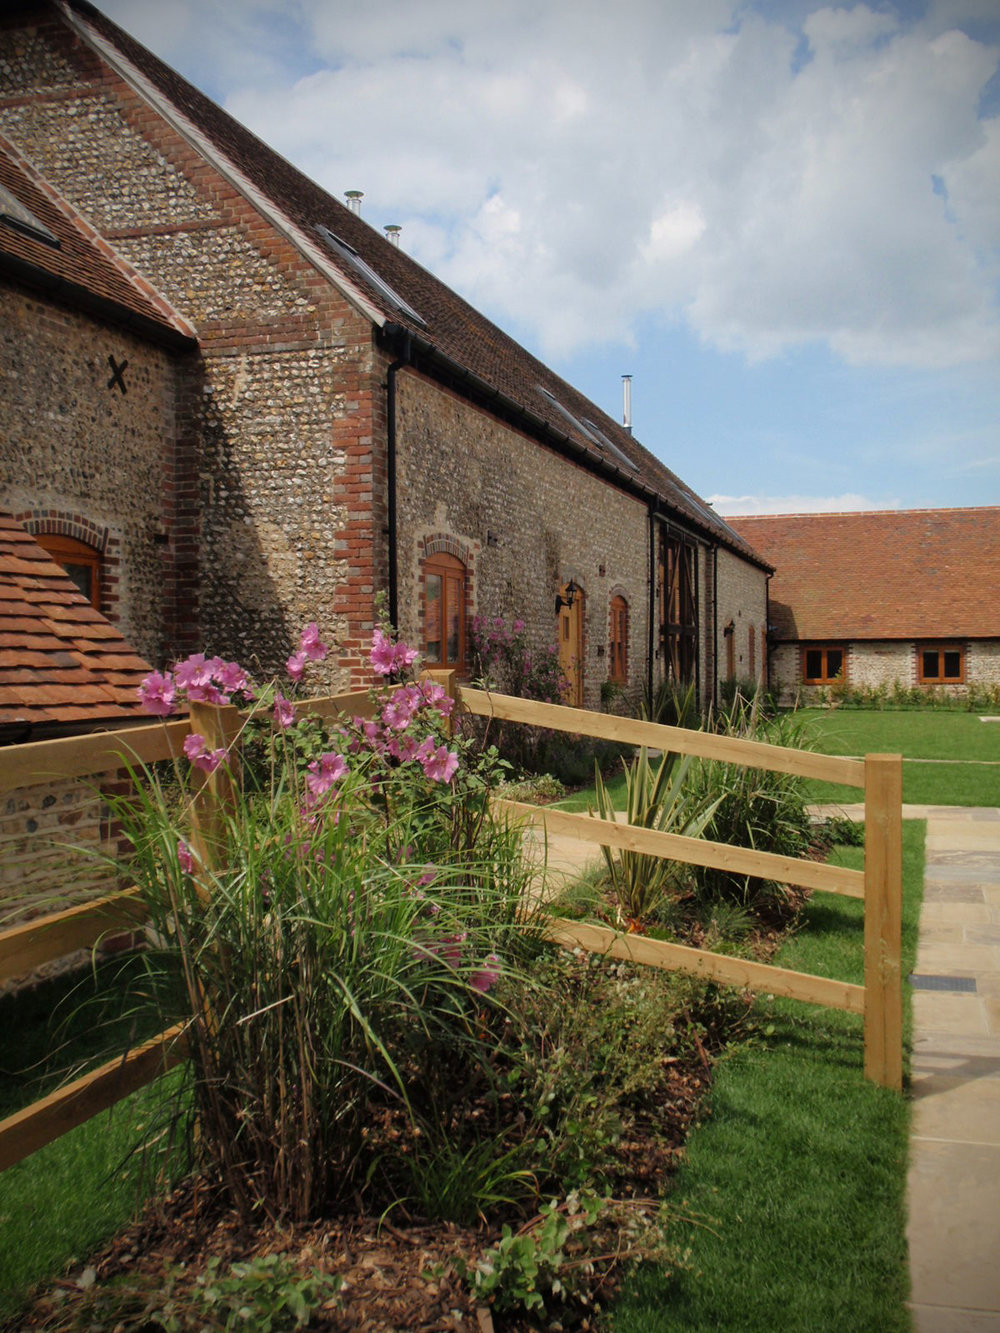 West Lavant Barns, Chichester